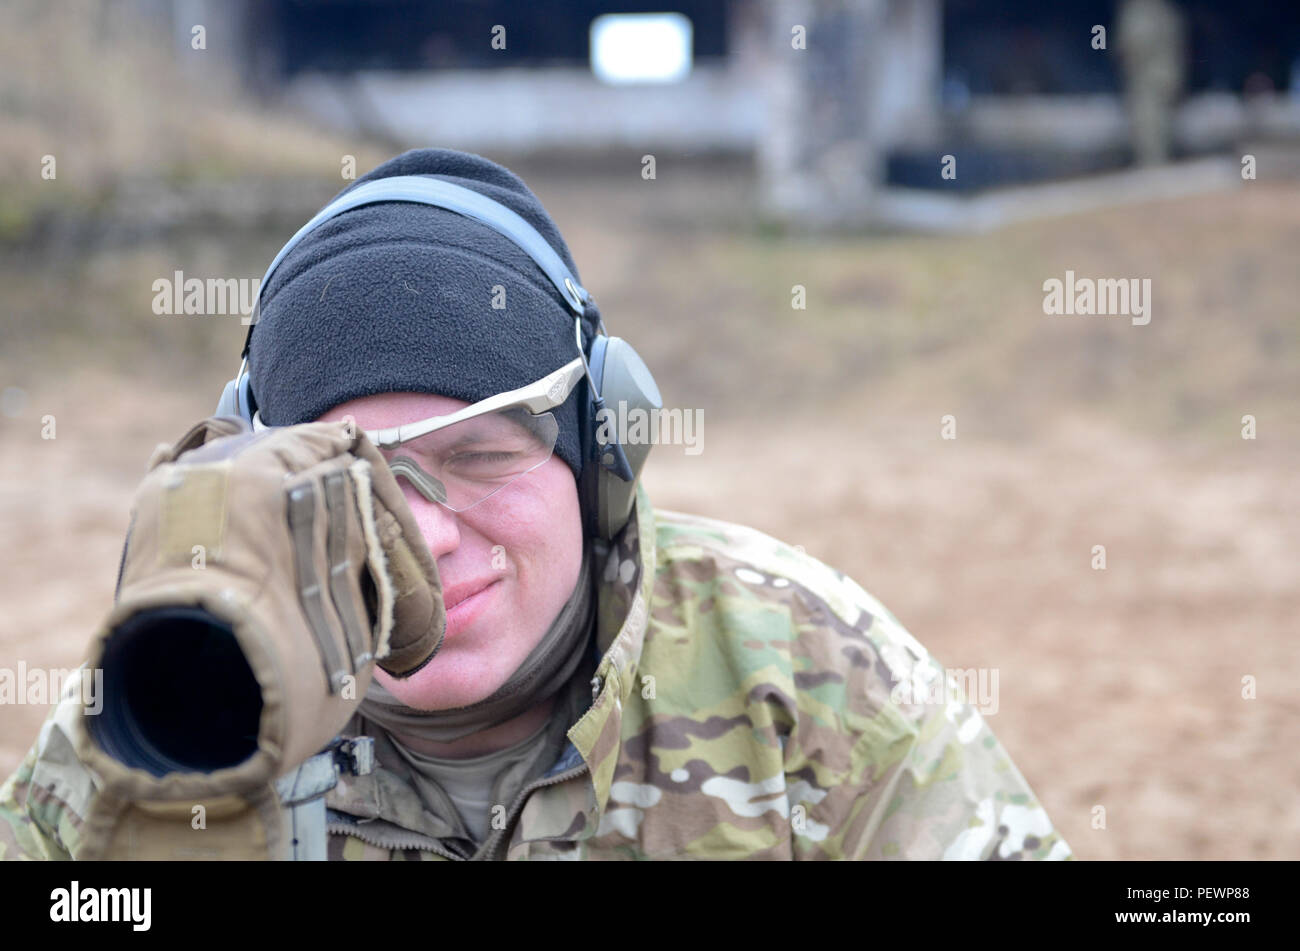 Sgt. John Zagozdon, a sniper with 3rd Squadron, 2nd Cavalry Regiment, stationed out of Vilseck, Germany, originally from Chicago, looks through monoculars to identify whether or not the enemy target was hit during a field training exercise at Adazi Training Area in Latvia, Feb. 3, 2016. (Photo by U.S. Army Staff Sgt. Steven M. Colvin/Released) - Stock Image